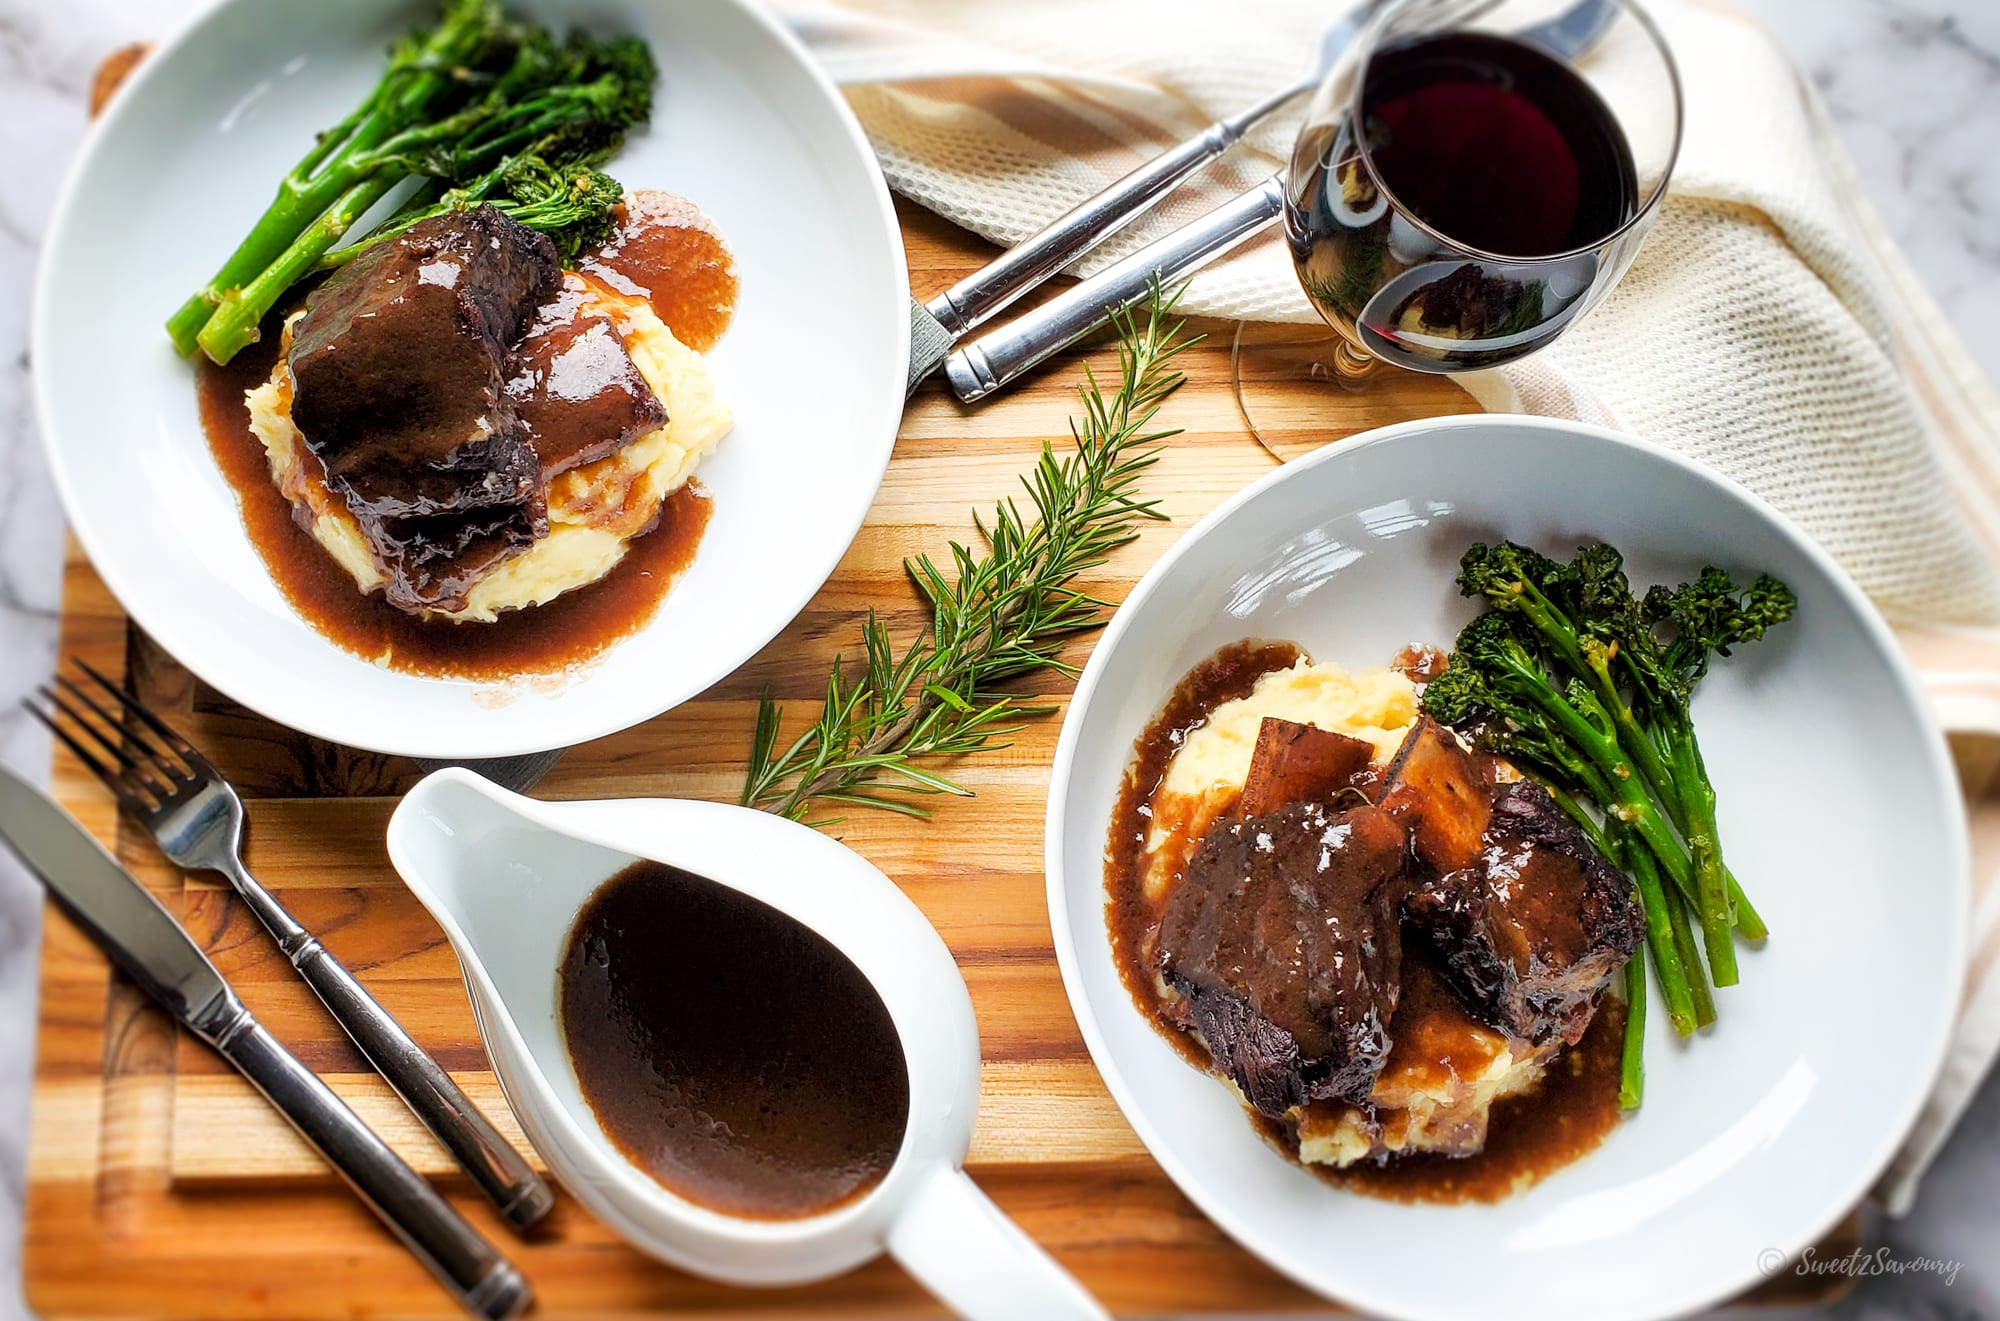 Red Wine Beef Braised Short Ribs With Rosemary